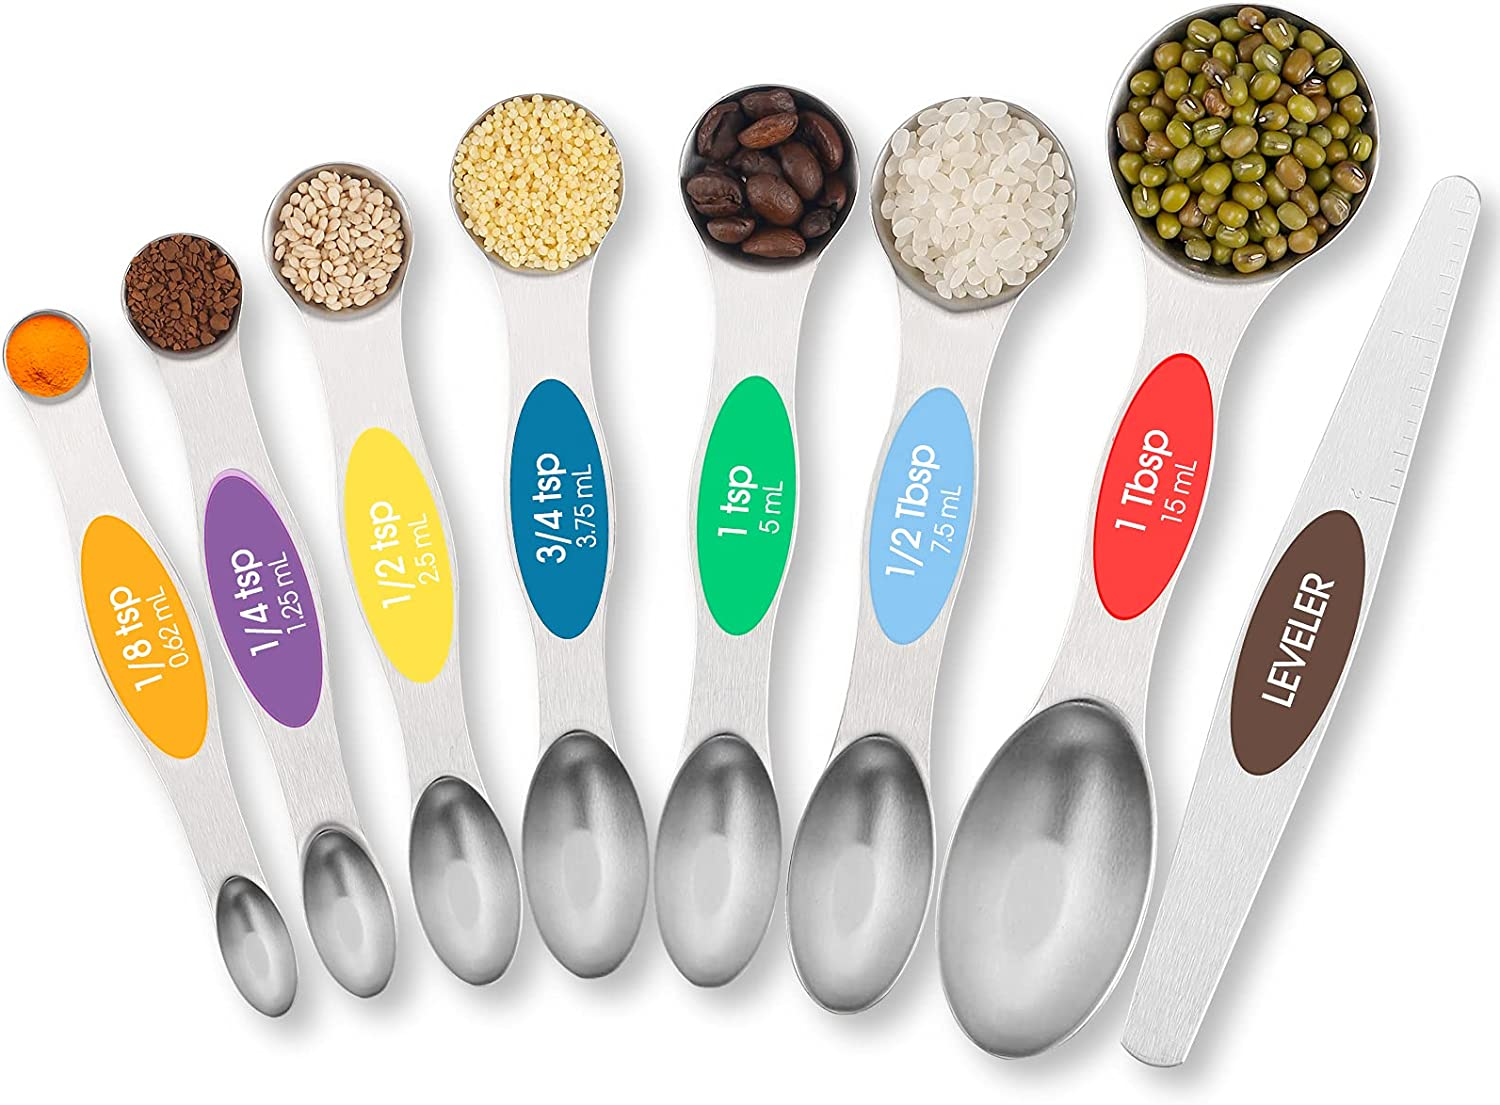 TEMEISI Magnetic Measuring Spoons Set, Dual Sided Stainless Steel Measuring Spoons Fits in Spice Jars, Stackable Teaspoon for Measuring Dry and Liquid Ingredients - Set of 8: Kitchen & Dining